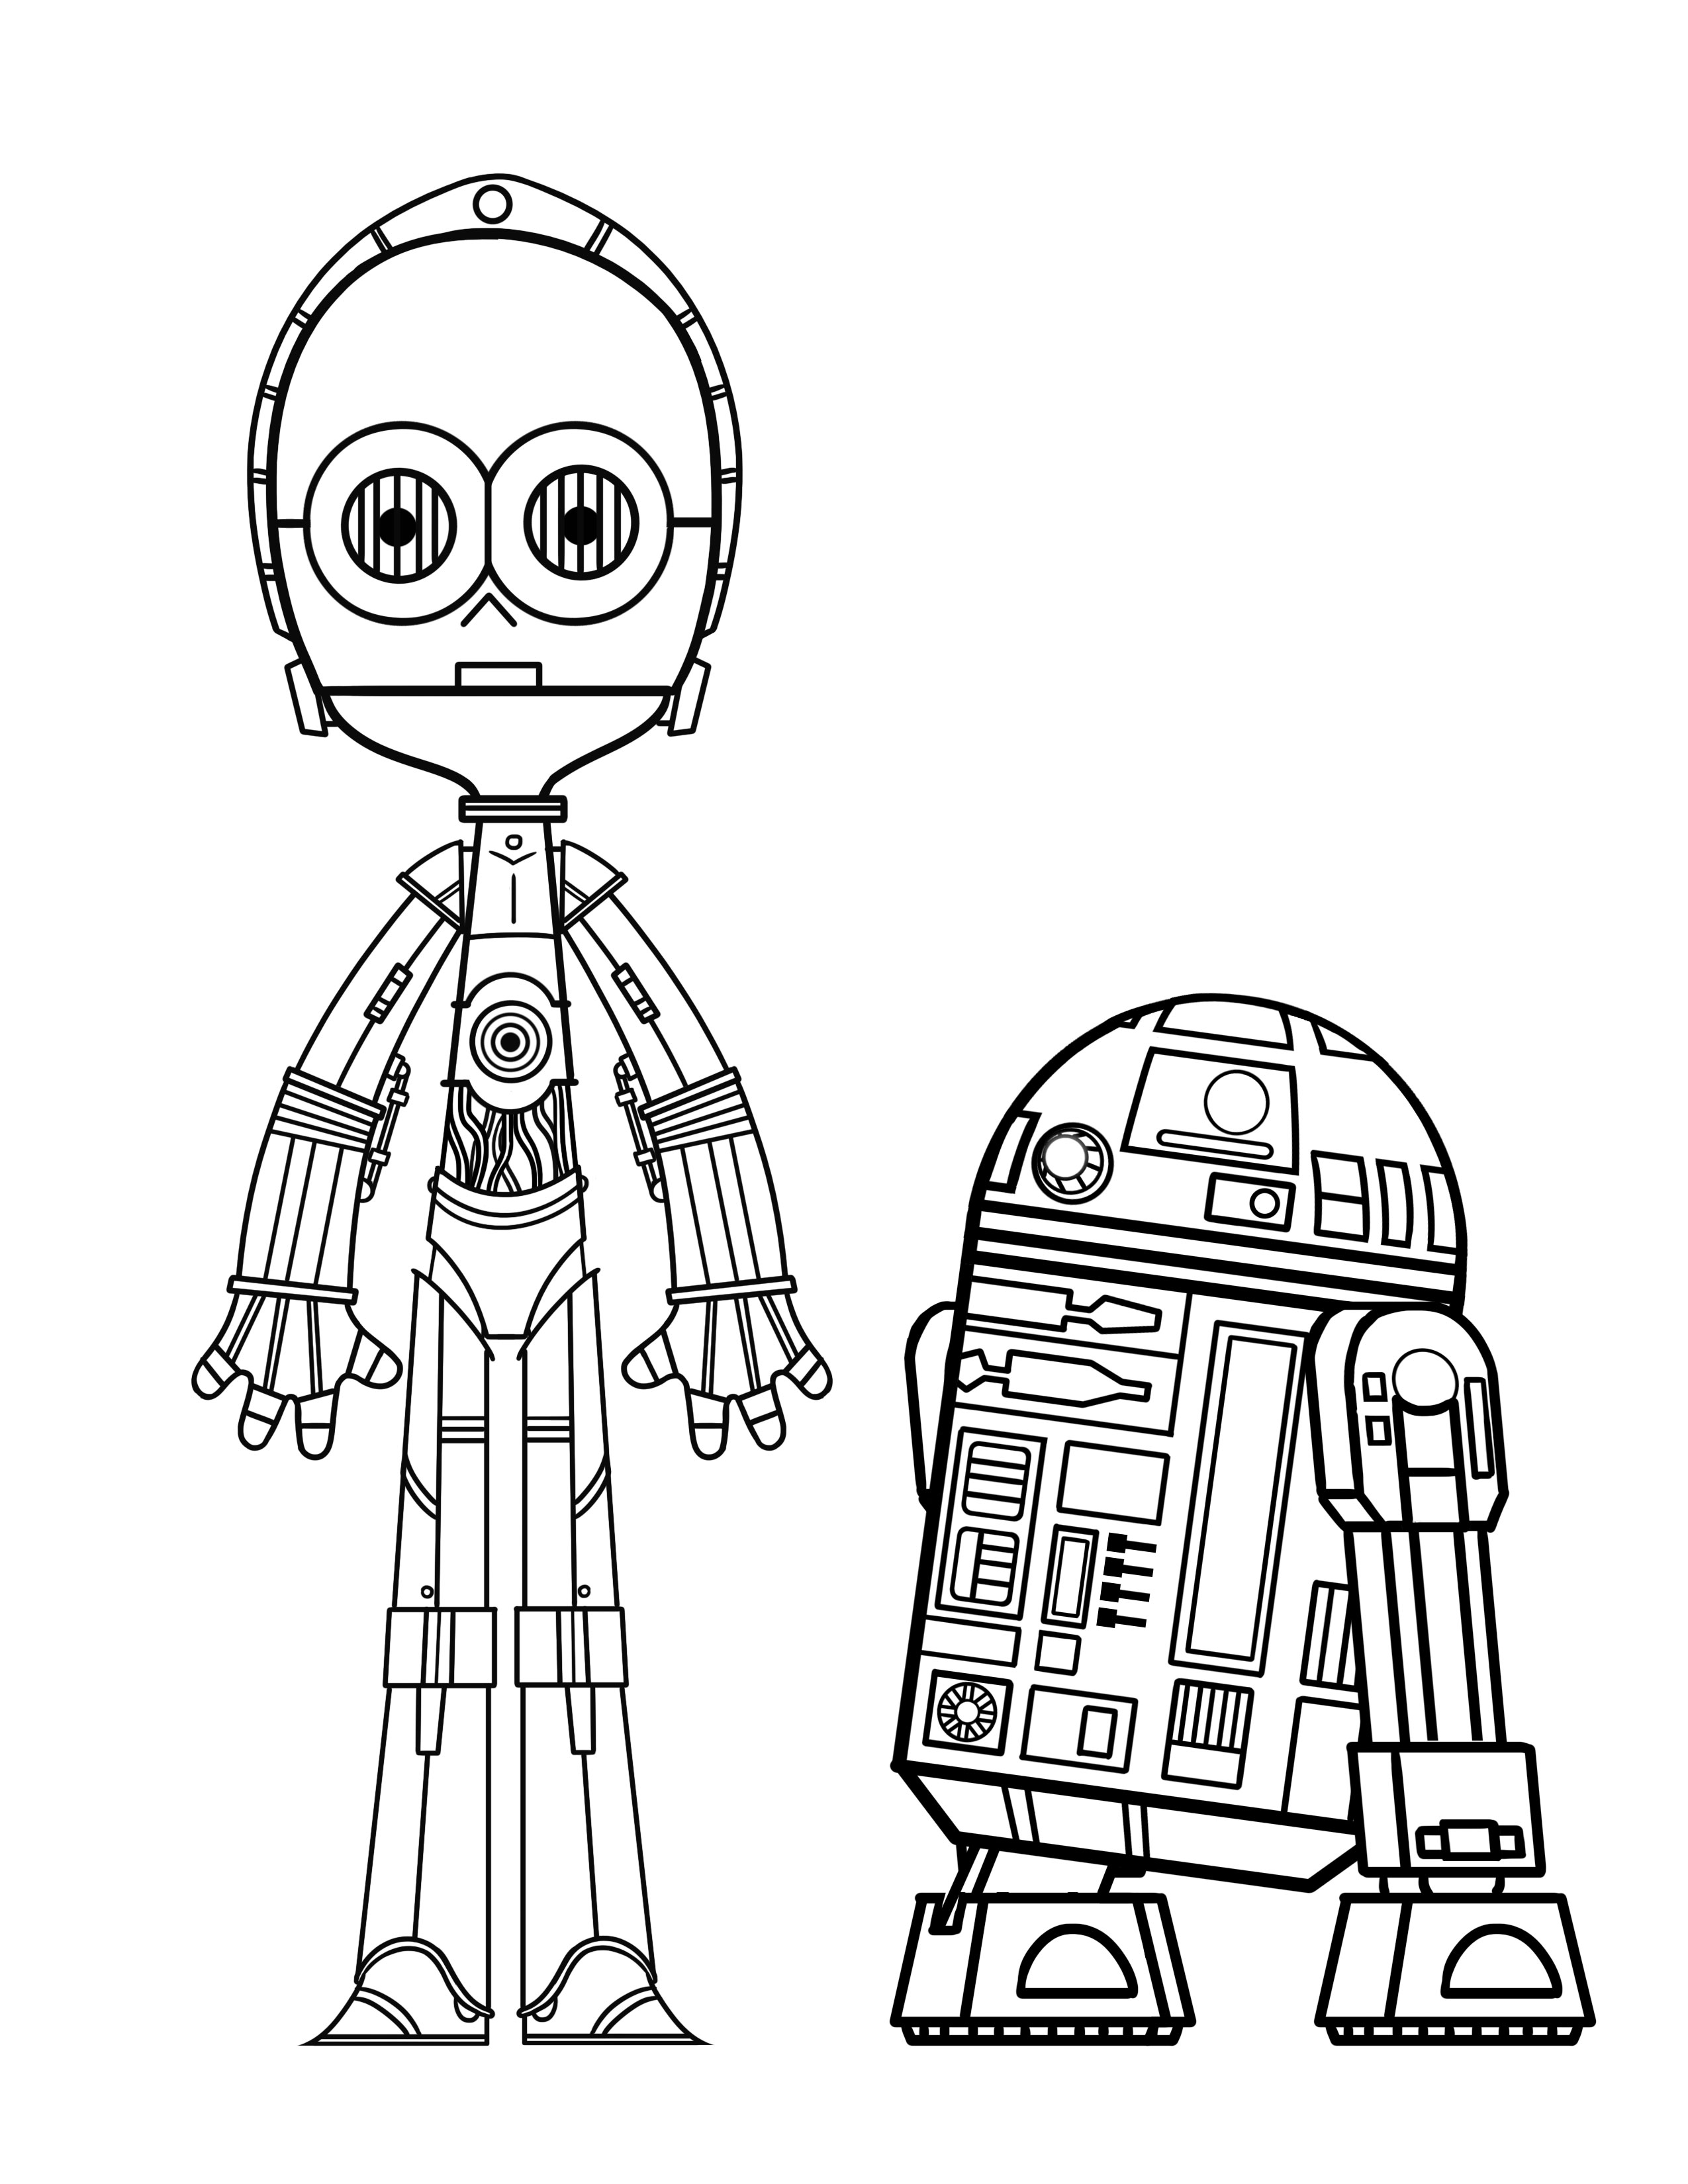 color pages star wars clone wars coloring pages at getcoloringscom free star wars color pages